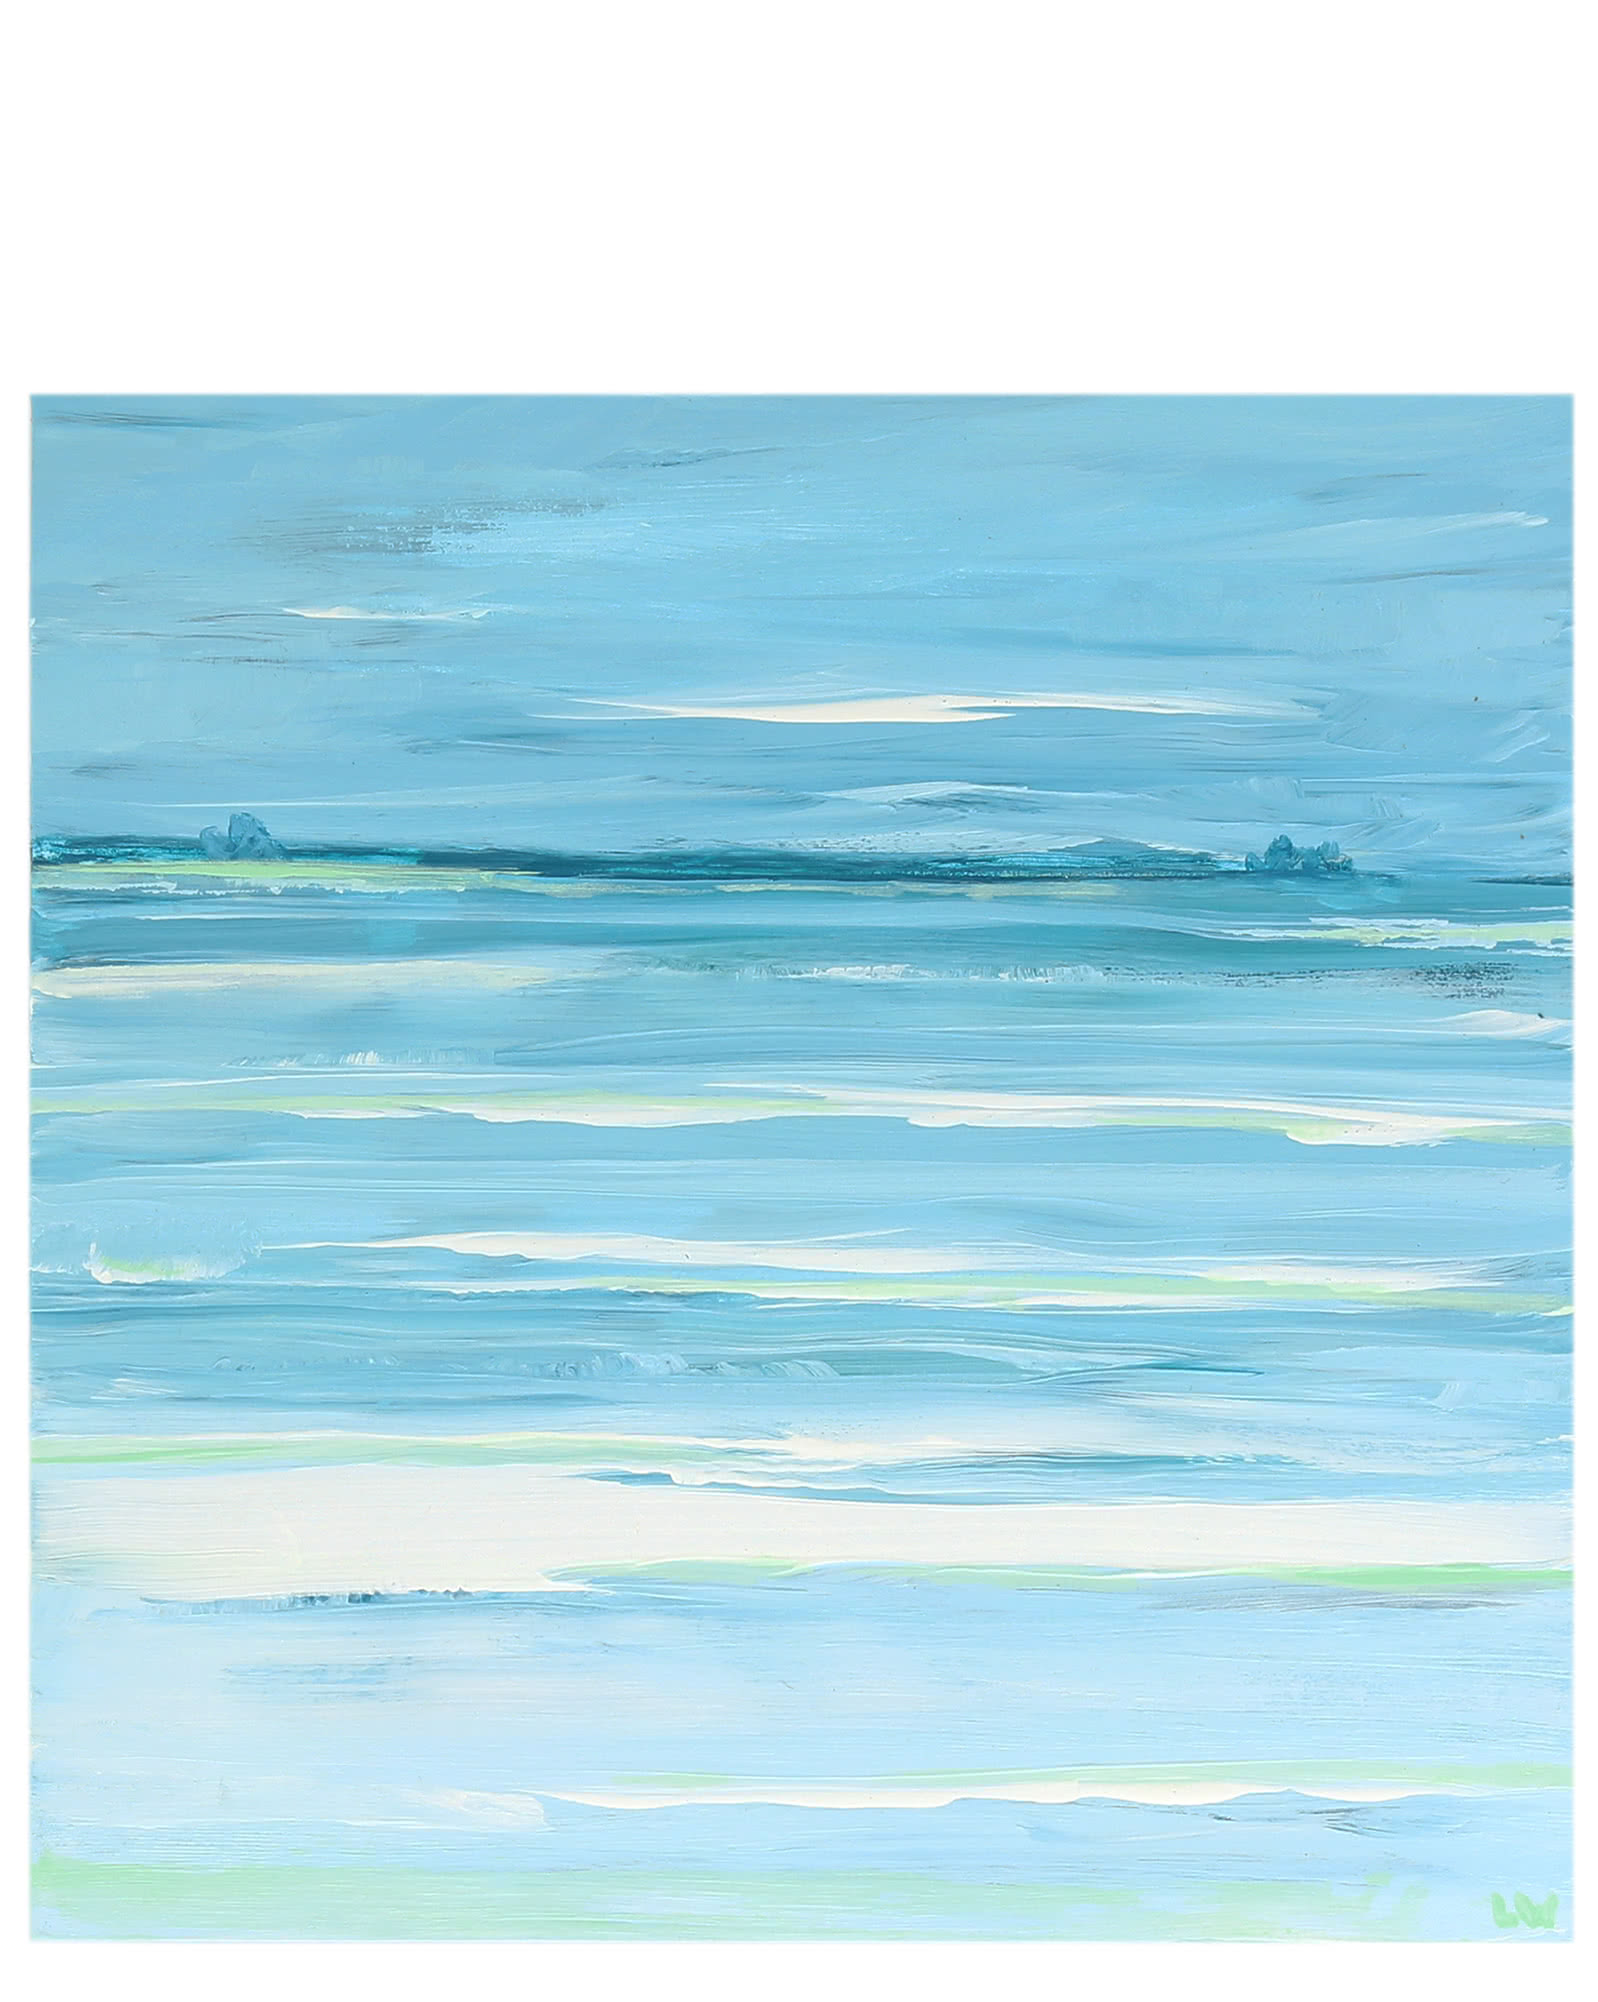 """Ocean Memories 127"" by Laurie Winthers,"